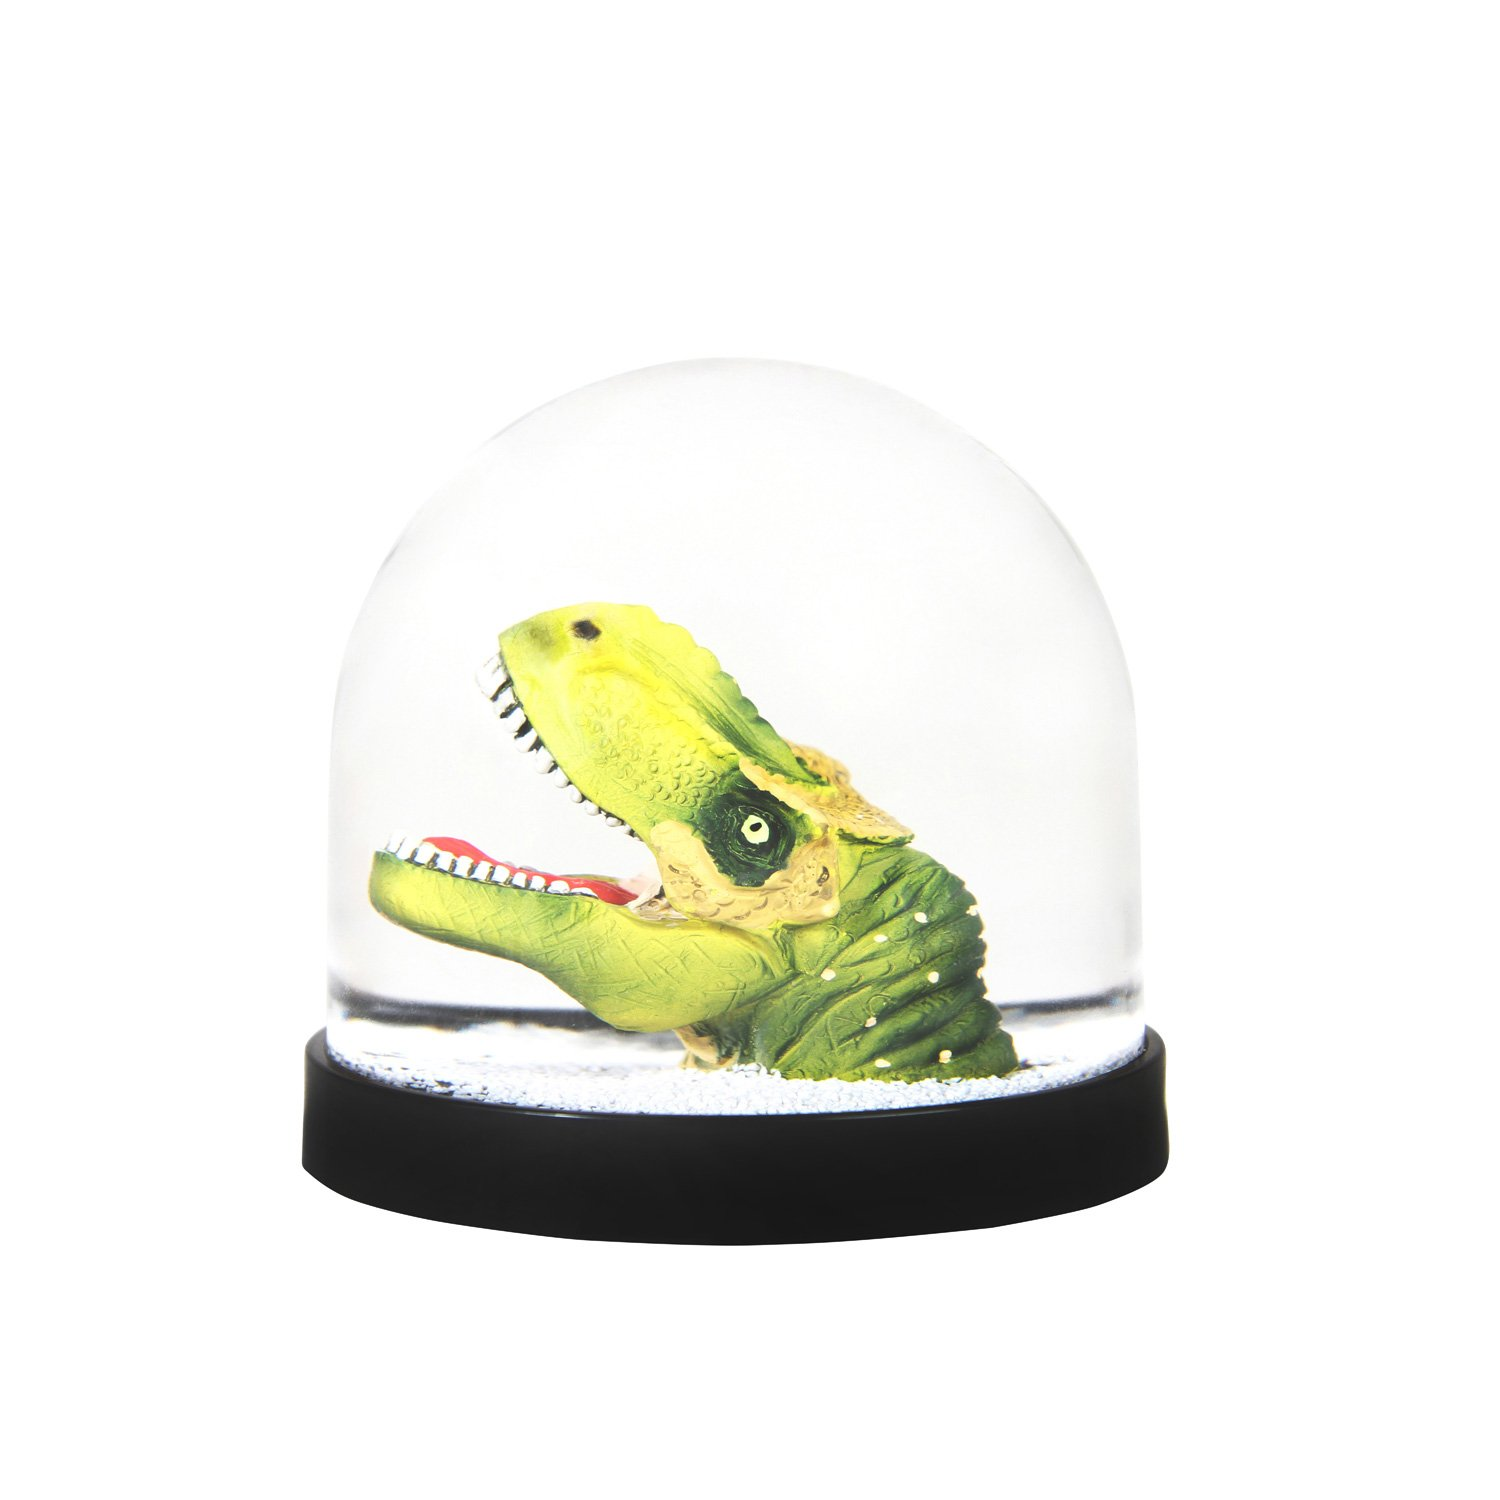 &Klevering Funny snow globe of high quality, with dinosaur, 8 x Ø 8.5 cm